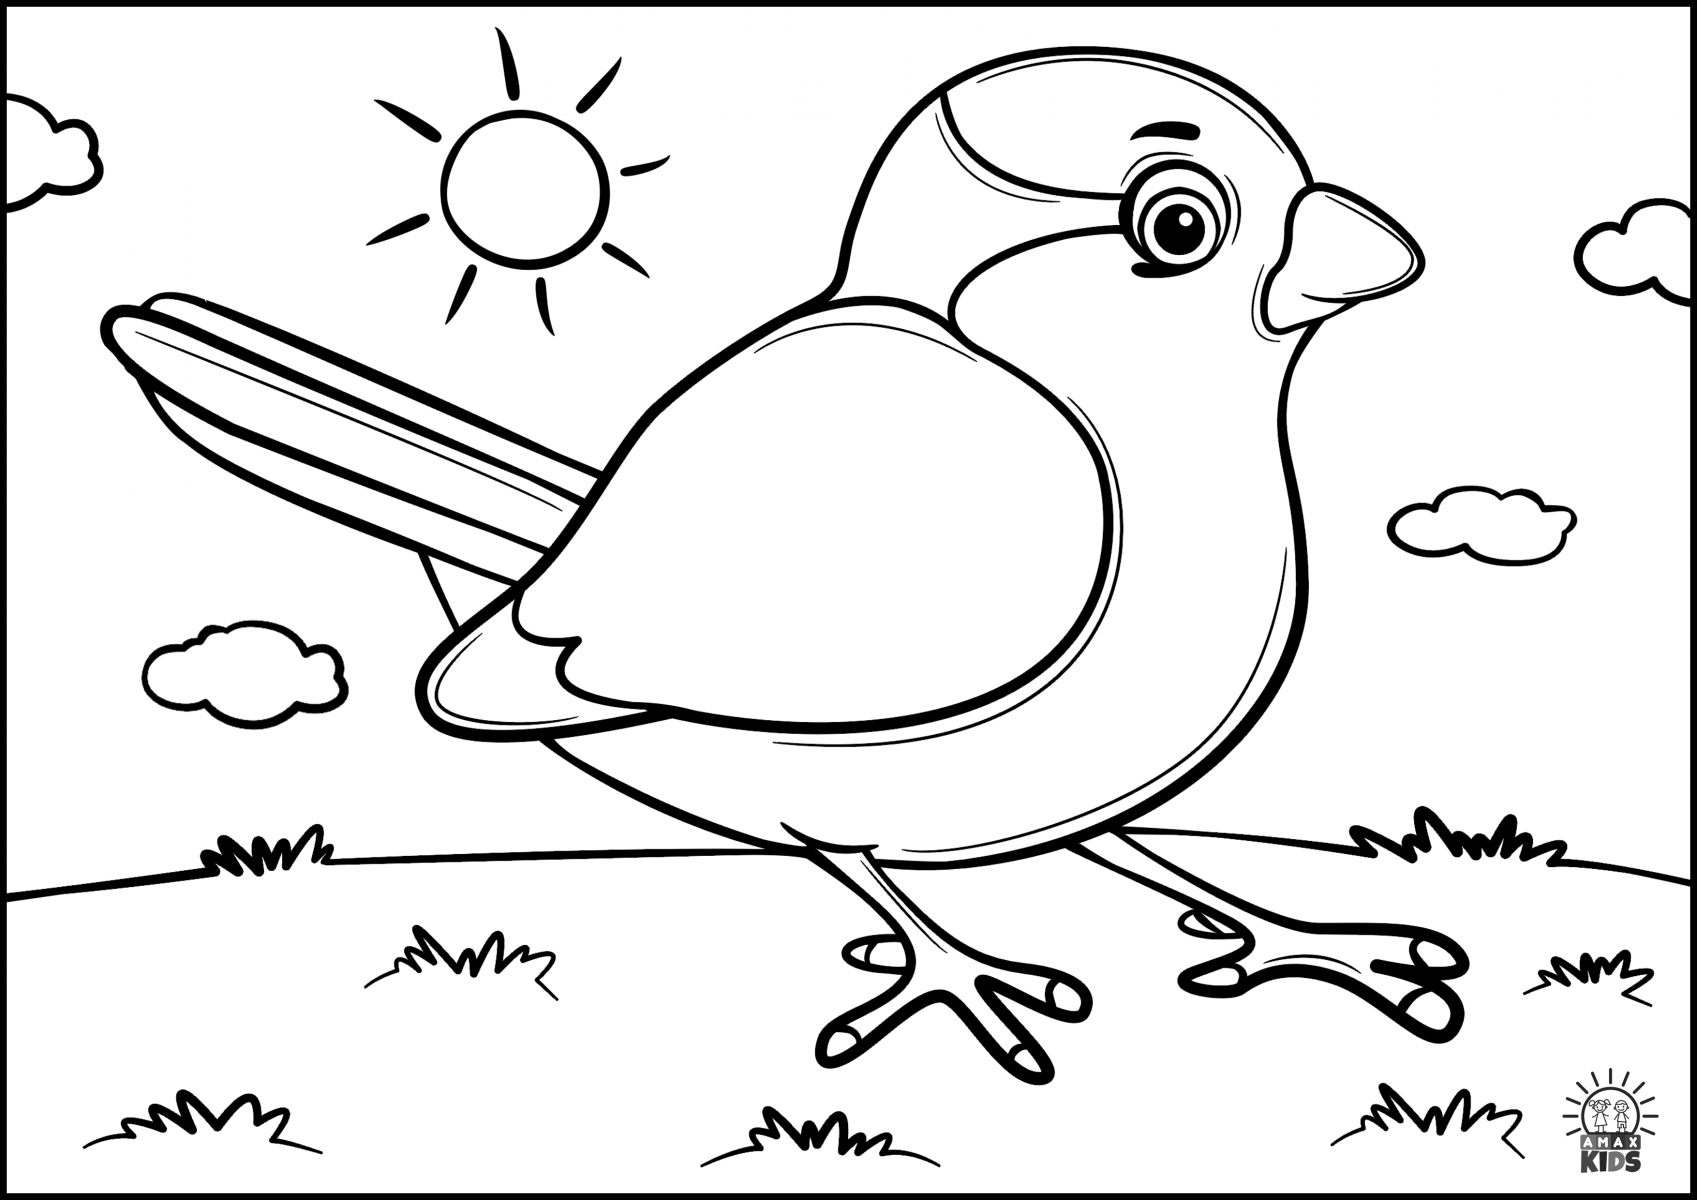 coloring pages for kids birds coloring pages for kids with birds amax kids for birds kids coloring pages